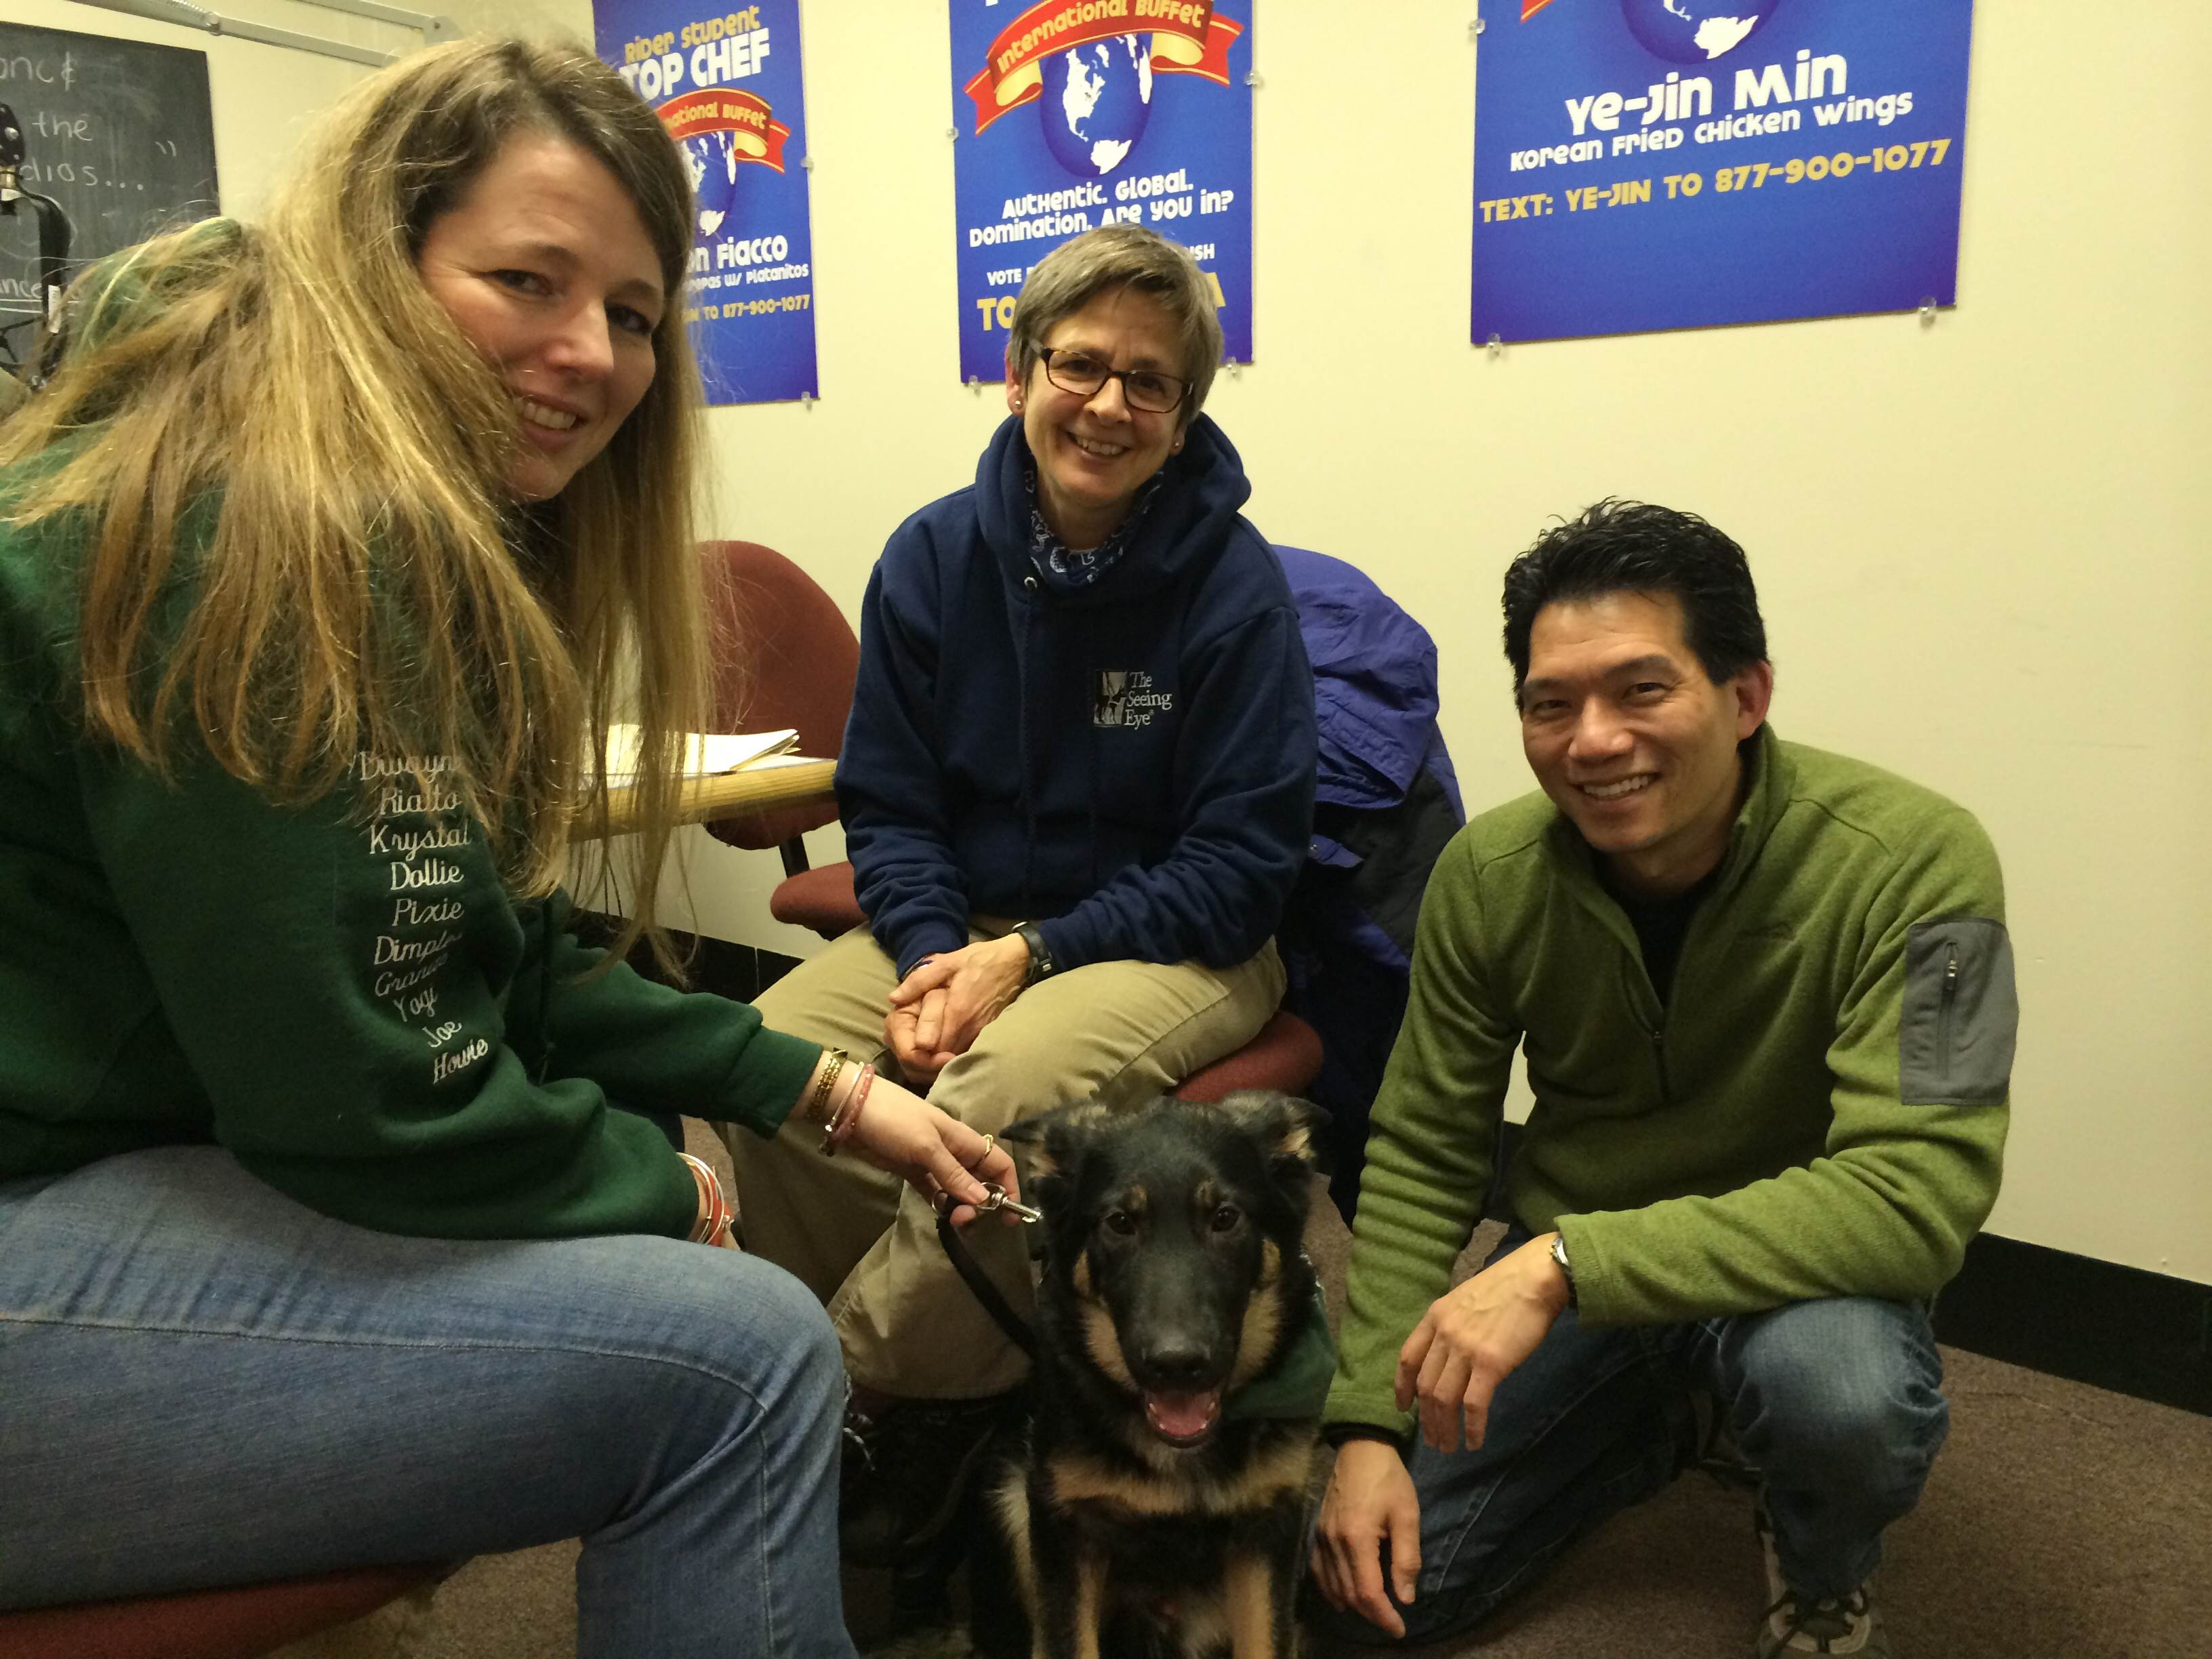 February 21, 2015 – The Seeing Eye, Inc. comes to visit!